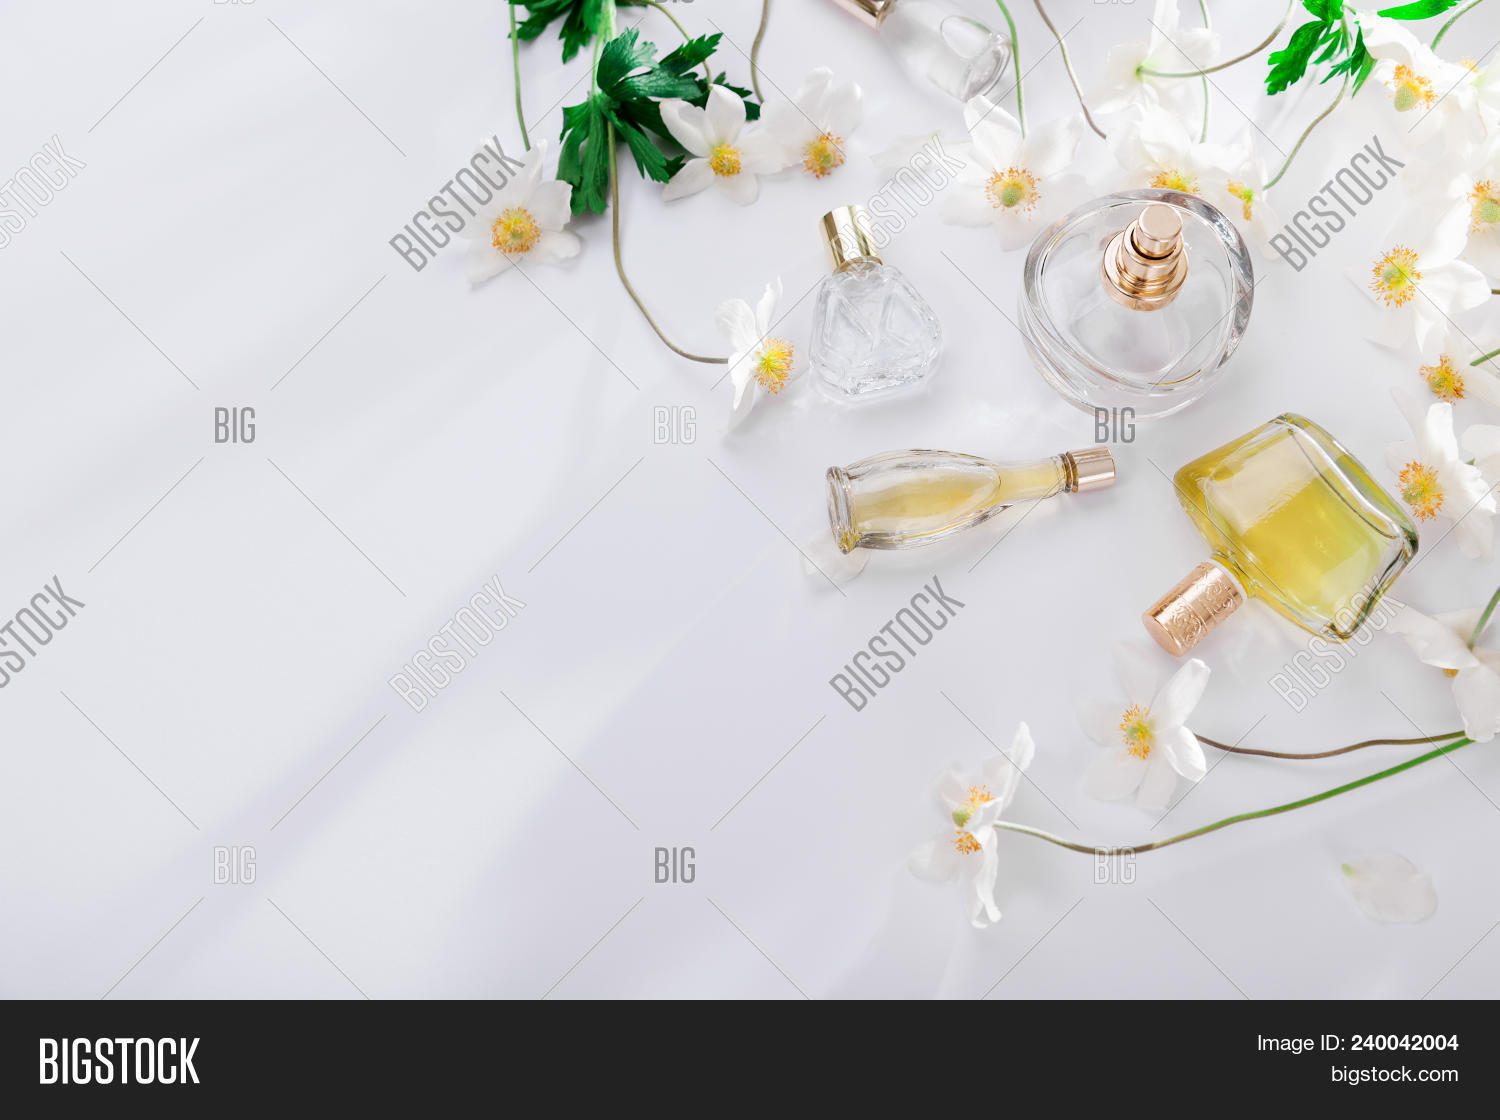 Natural Perfume Image Photo Free Trial Bigstock